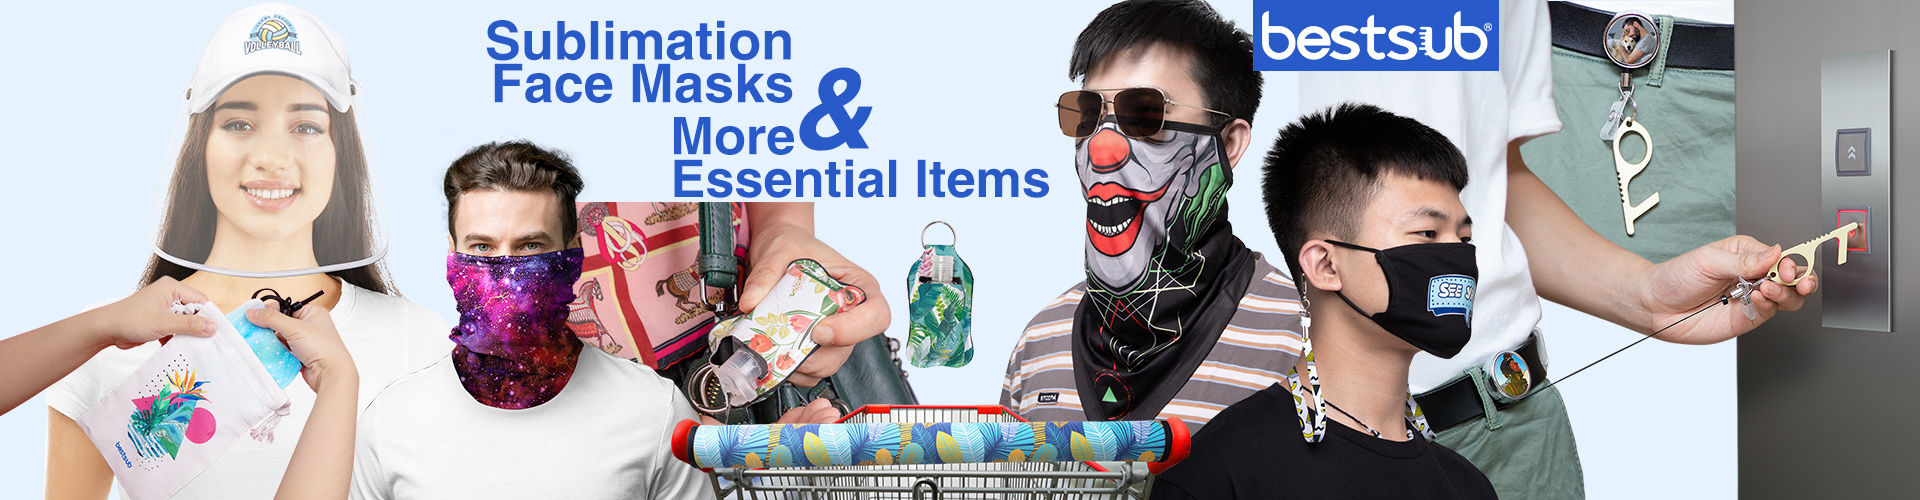 2020-9-1_Sublimation_Face_Masks_&_More_Essential_Items_new_web